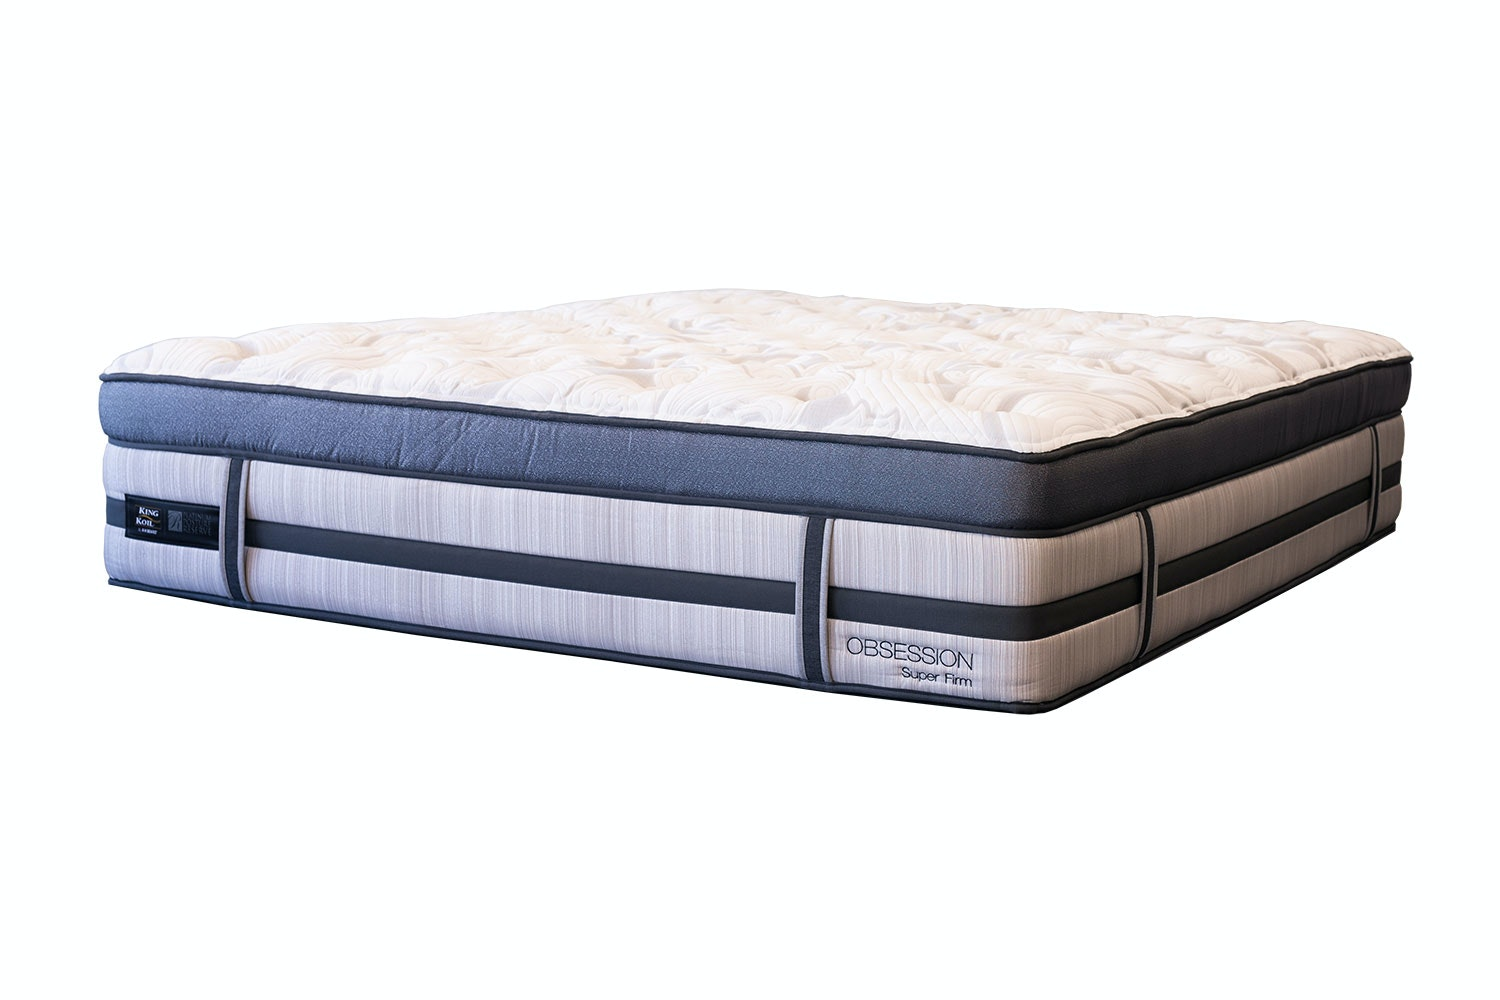 Obsession Super Firm Queen Mattress by King Koil